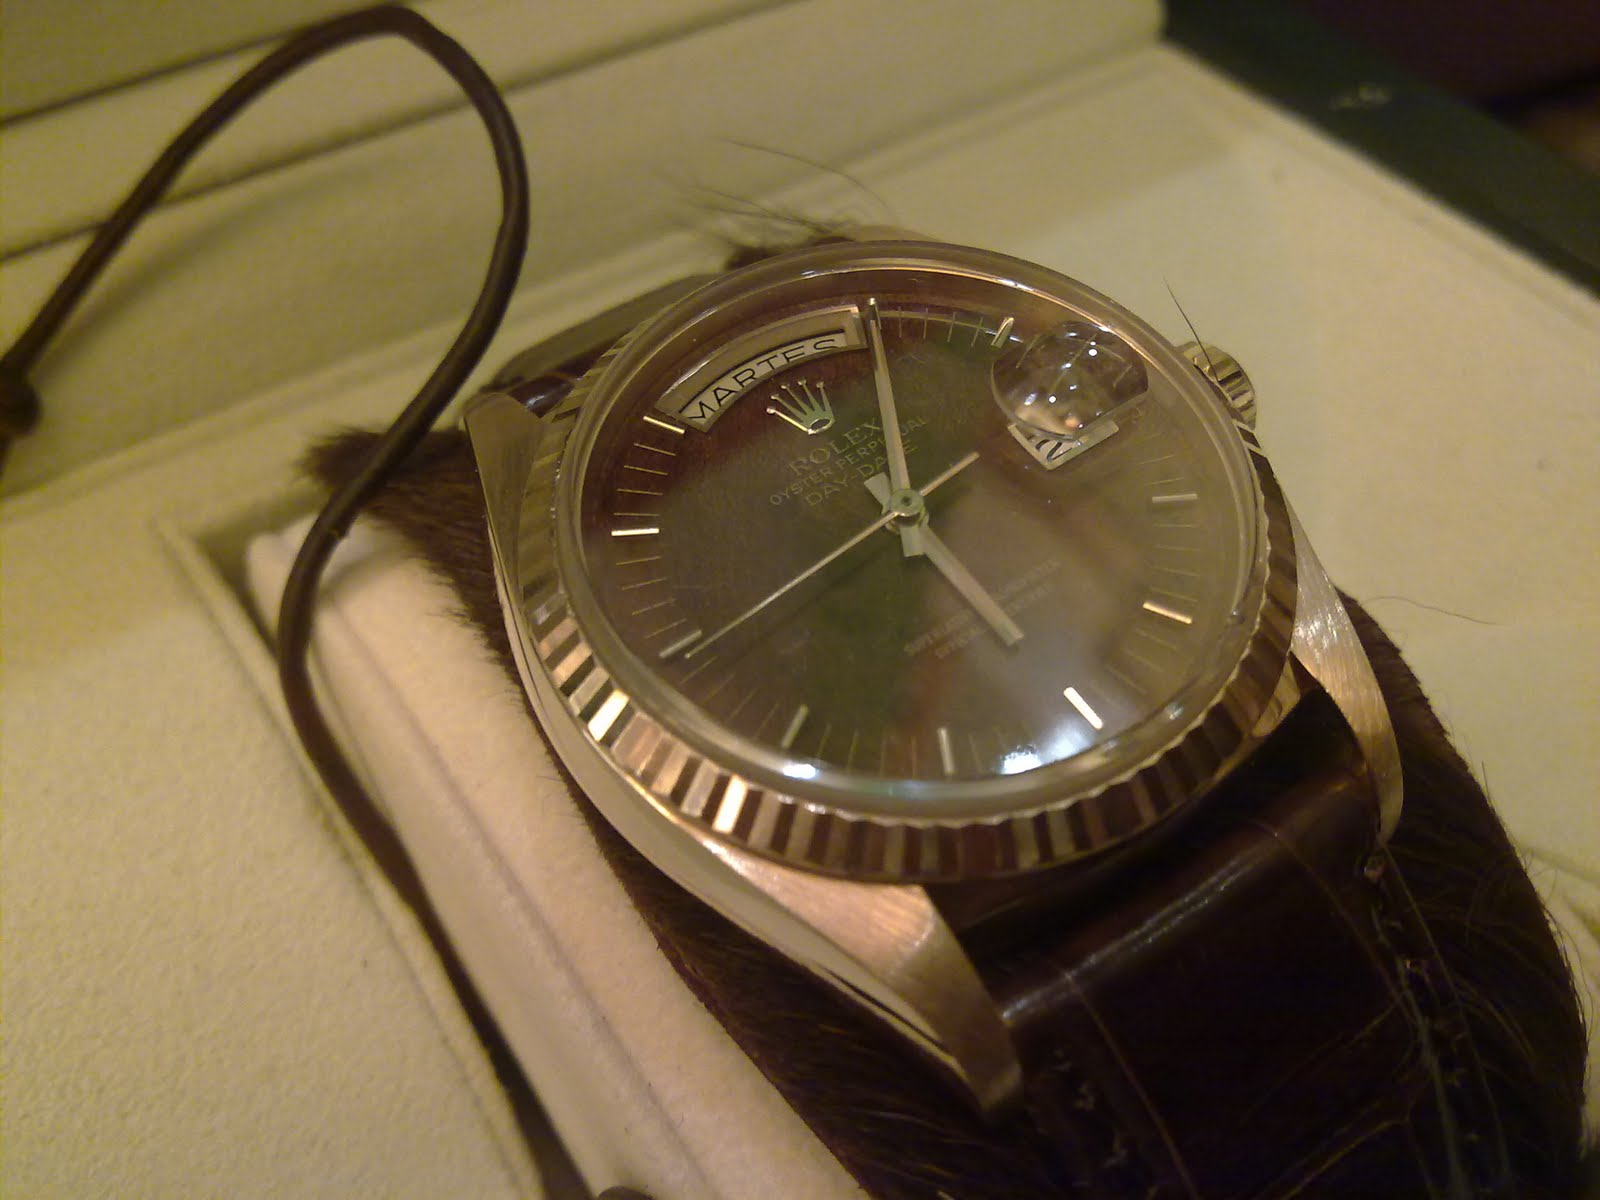 hong kong fever 香港勞友 the best looking rolex oyster